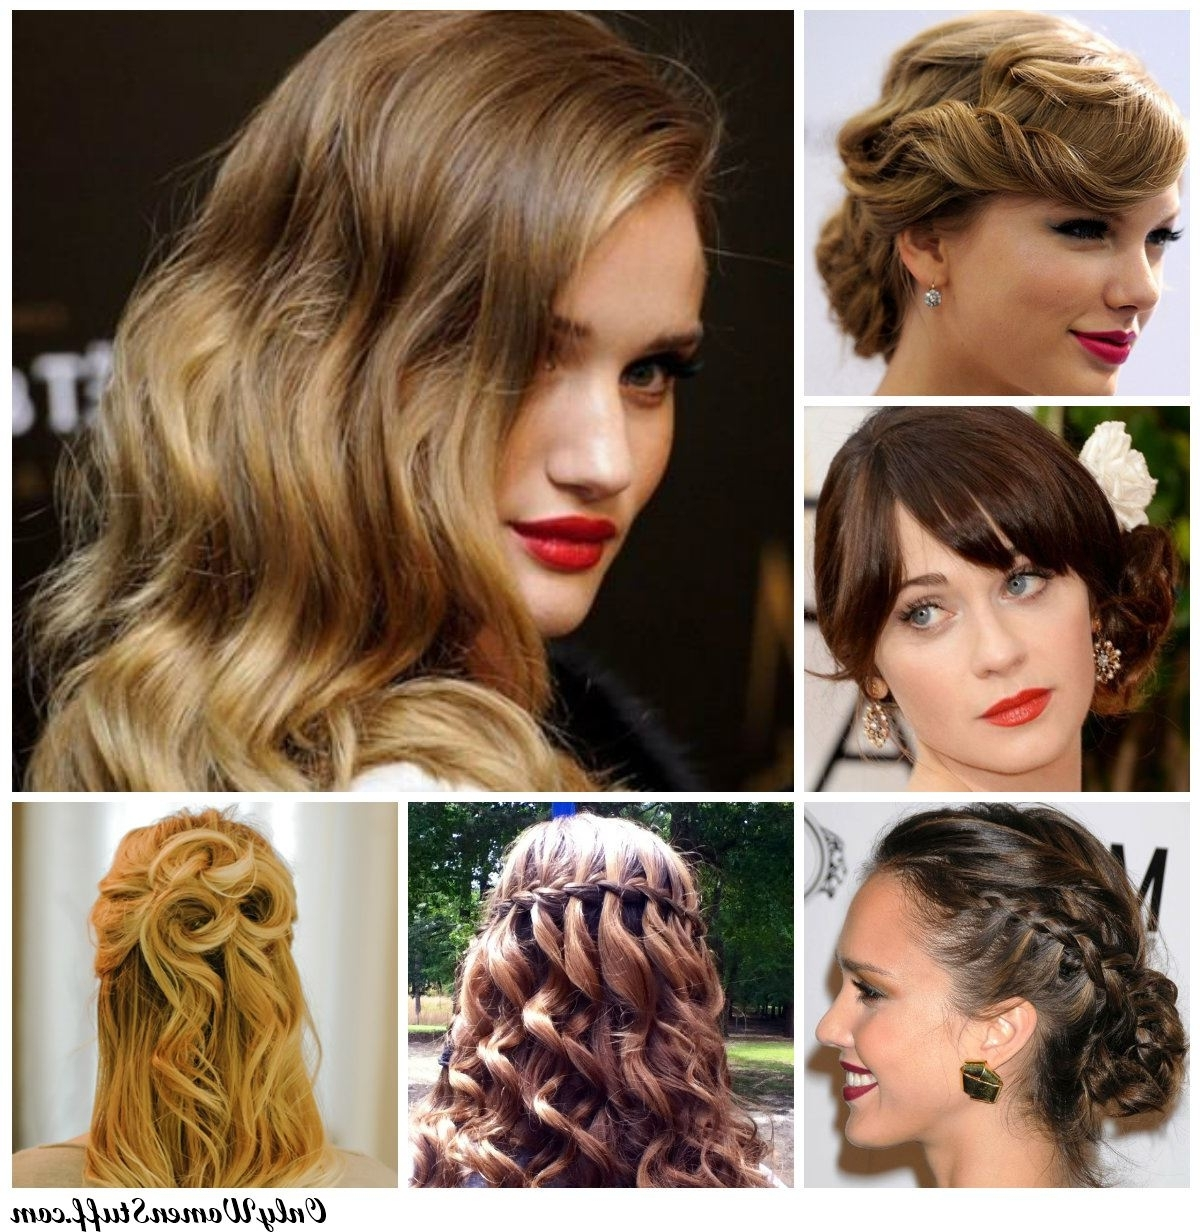 50+ Easy Prom Hairstyles & Updos Ideas (Stepstep) Intended For Updo Hairstyles For Short Hair Prom (View 5 of 15)